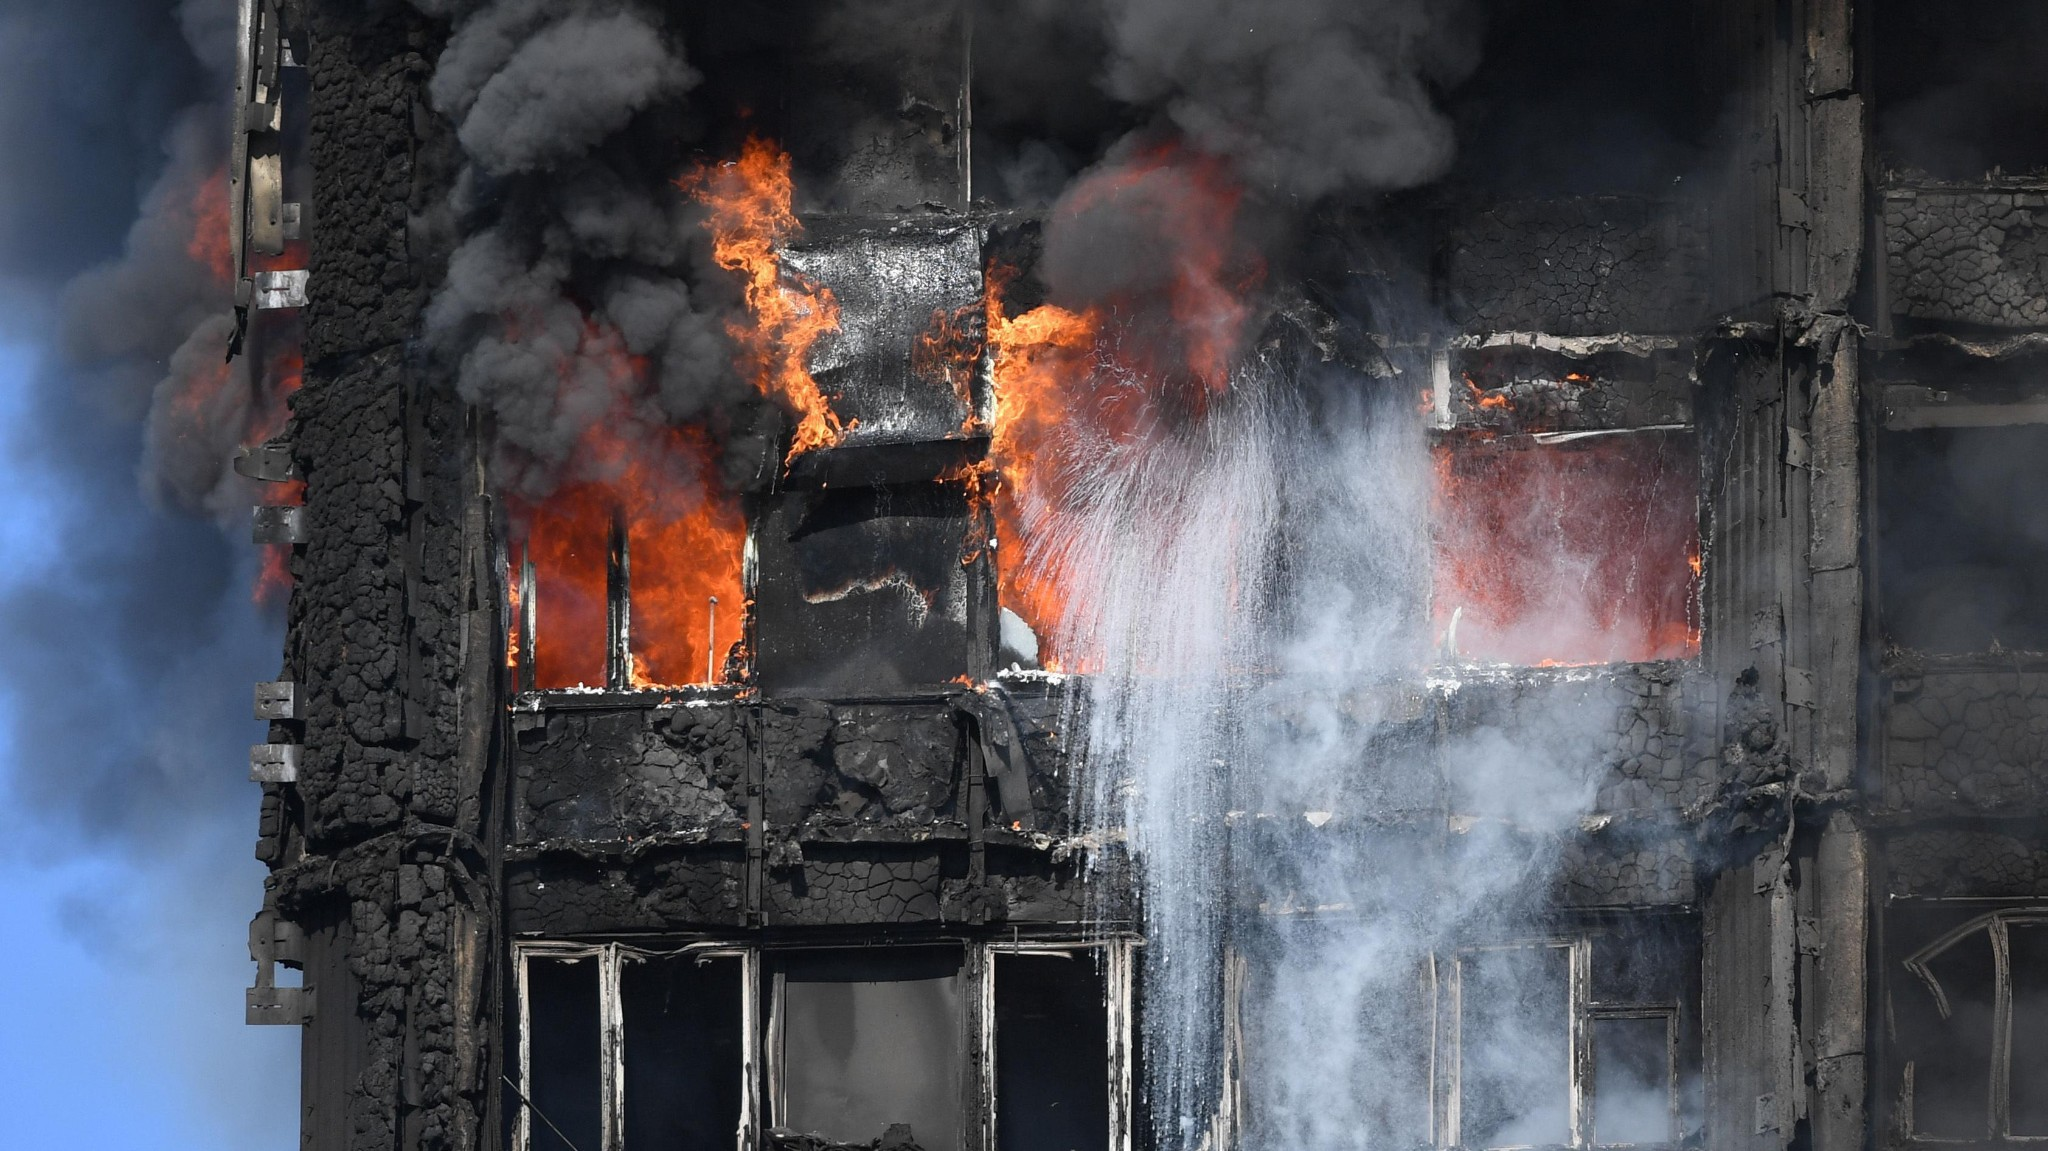 Grenfell Tower: at least six dead as fire destroys 24-storey building